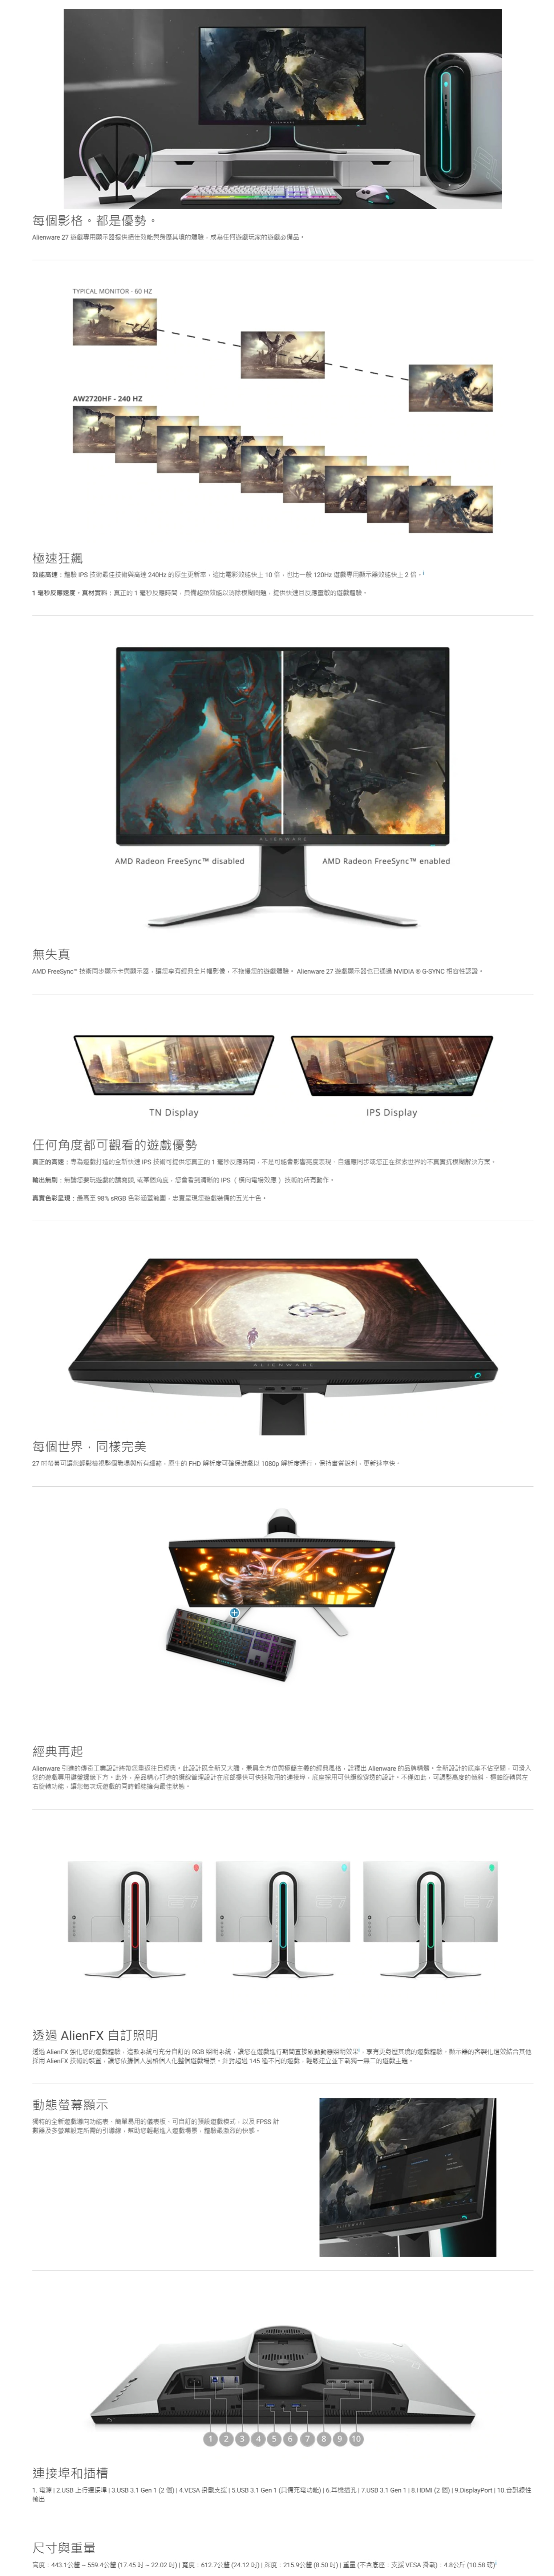 DELL 戴爾 AW2720HF 顯示屏